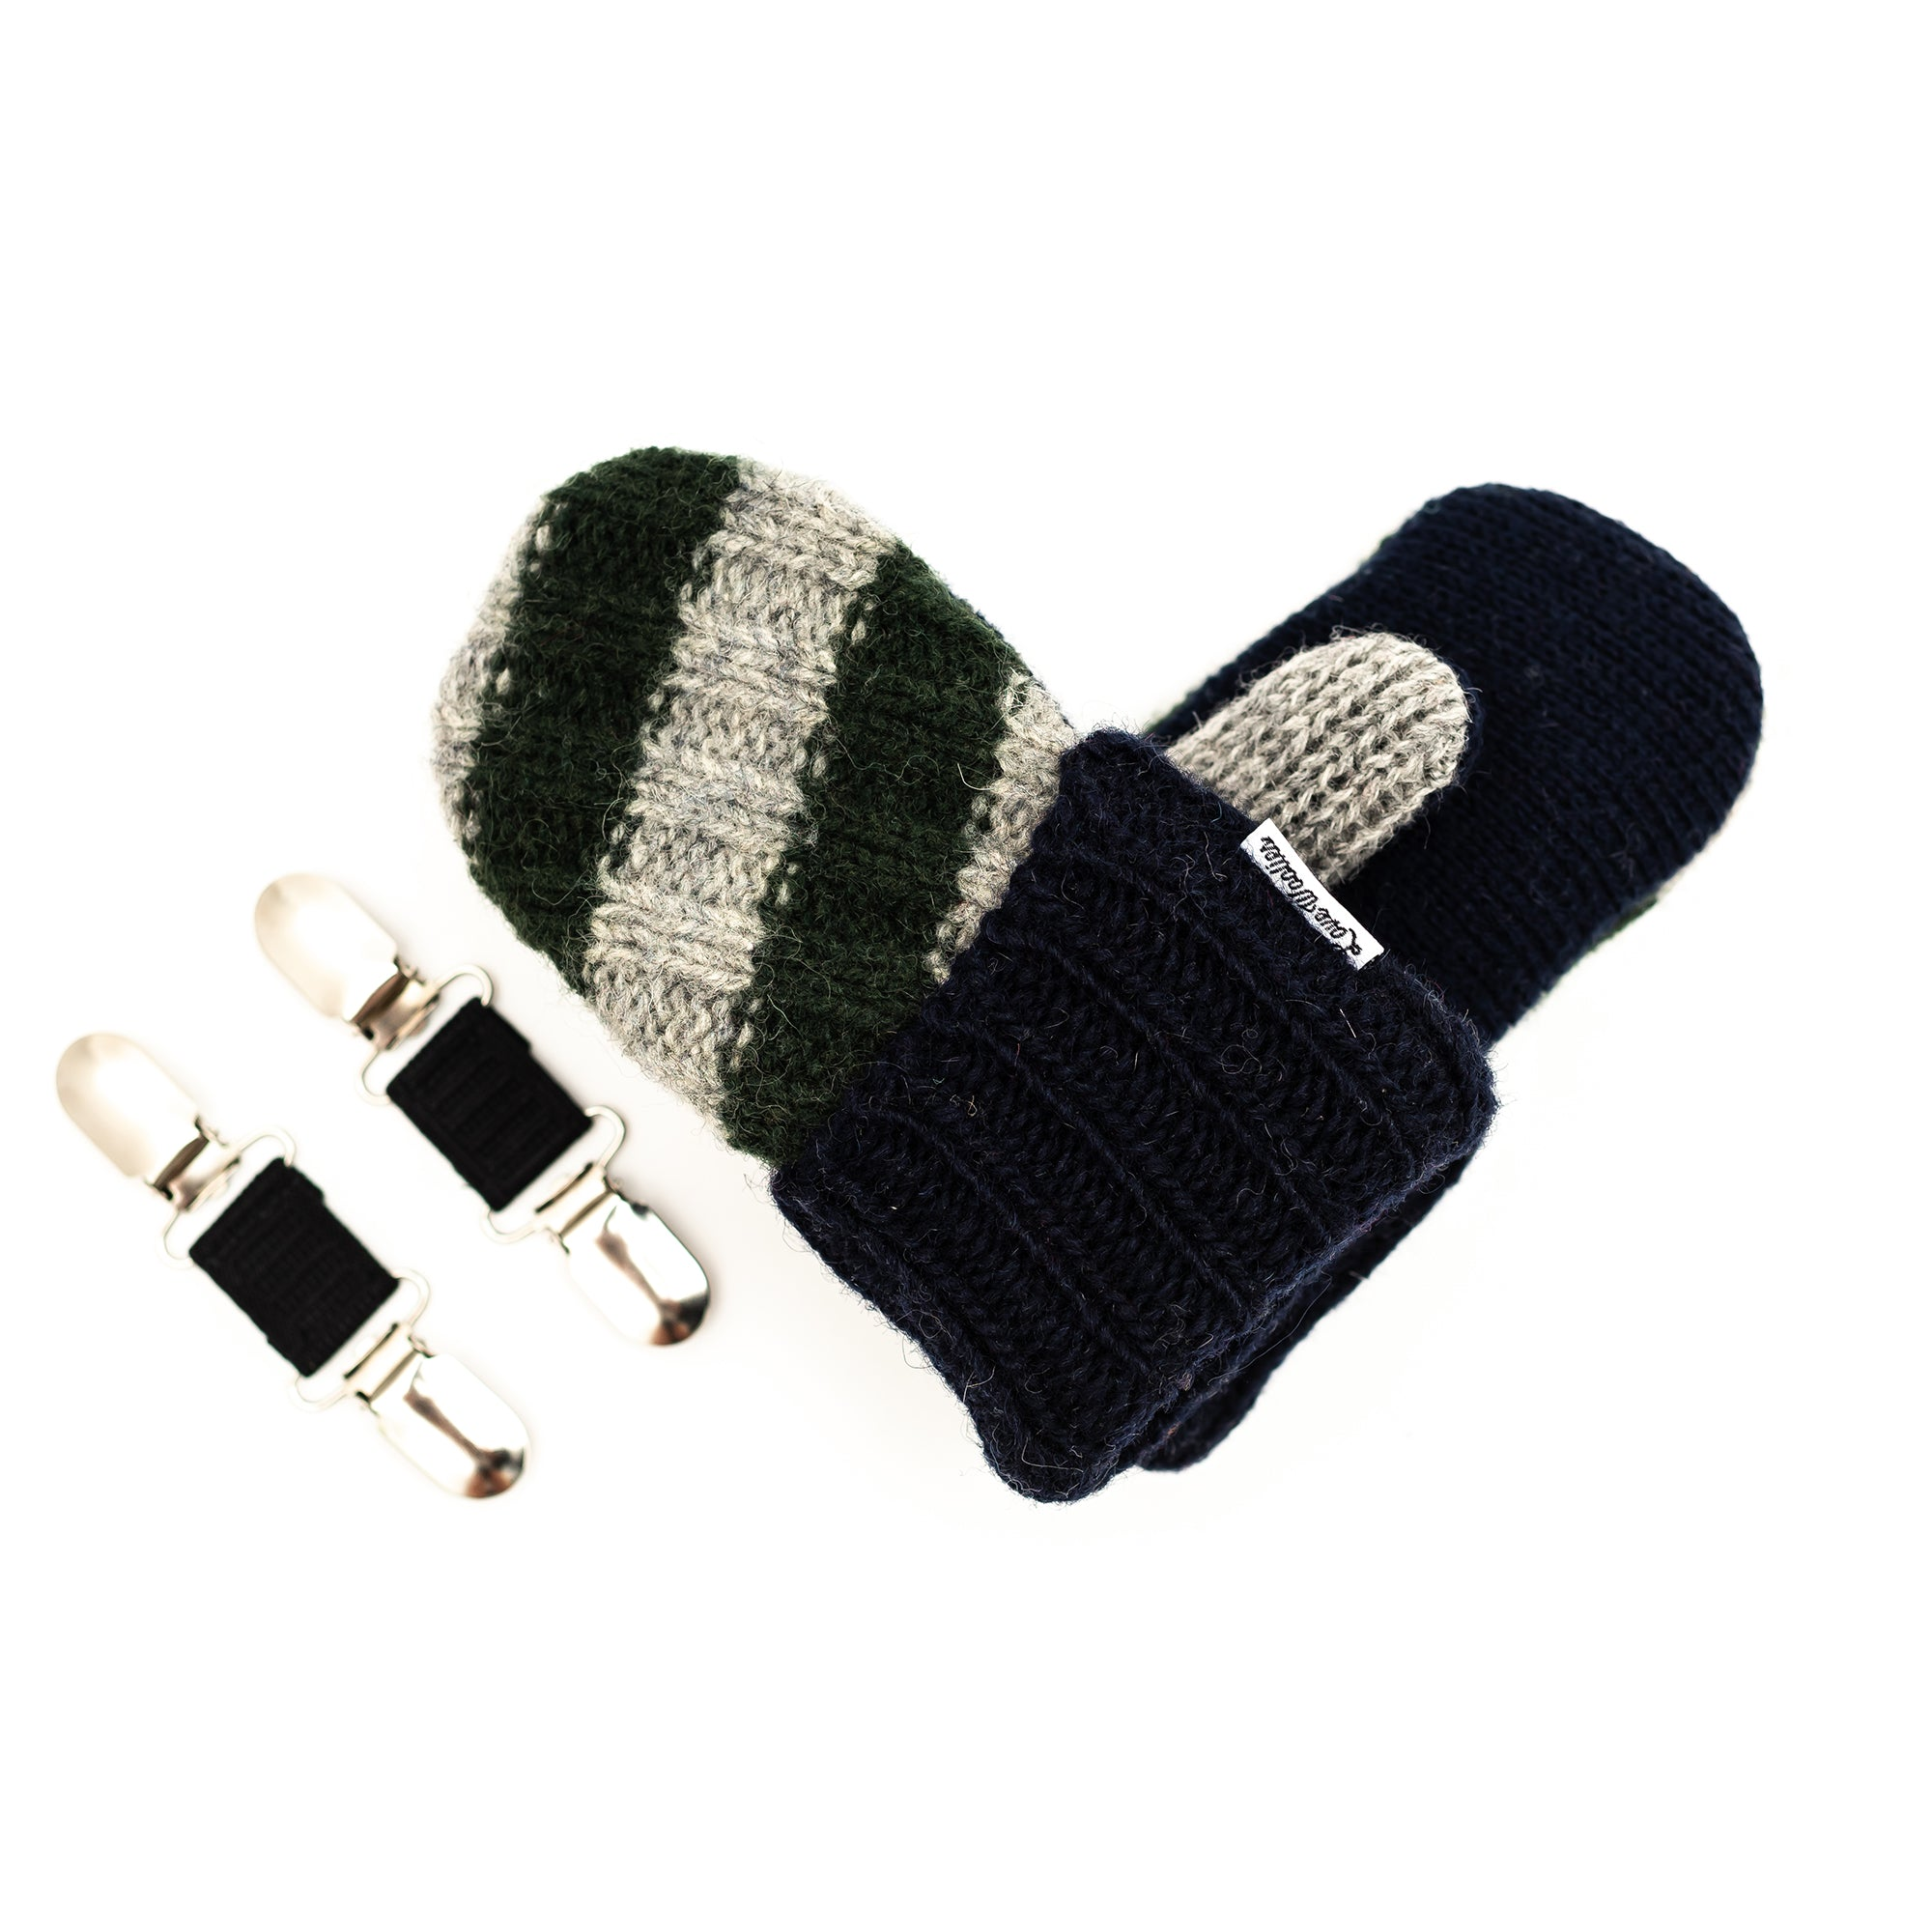 Small Kid's Wool Sweater Mittens | Tiny Tyke